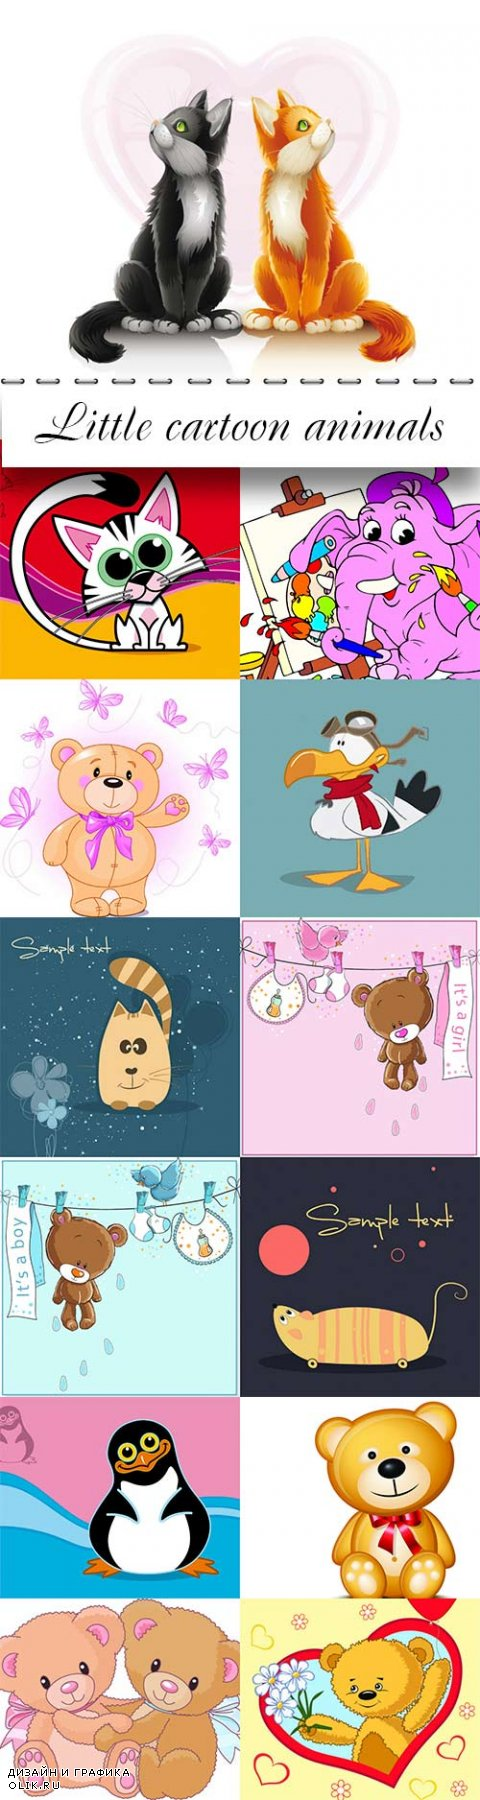 Little cartoon animals